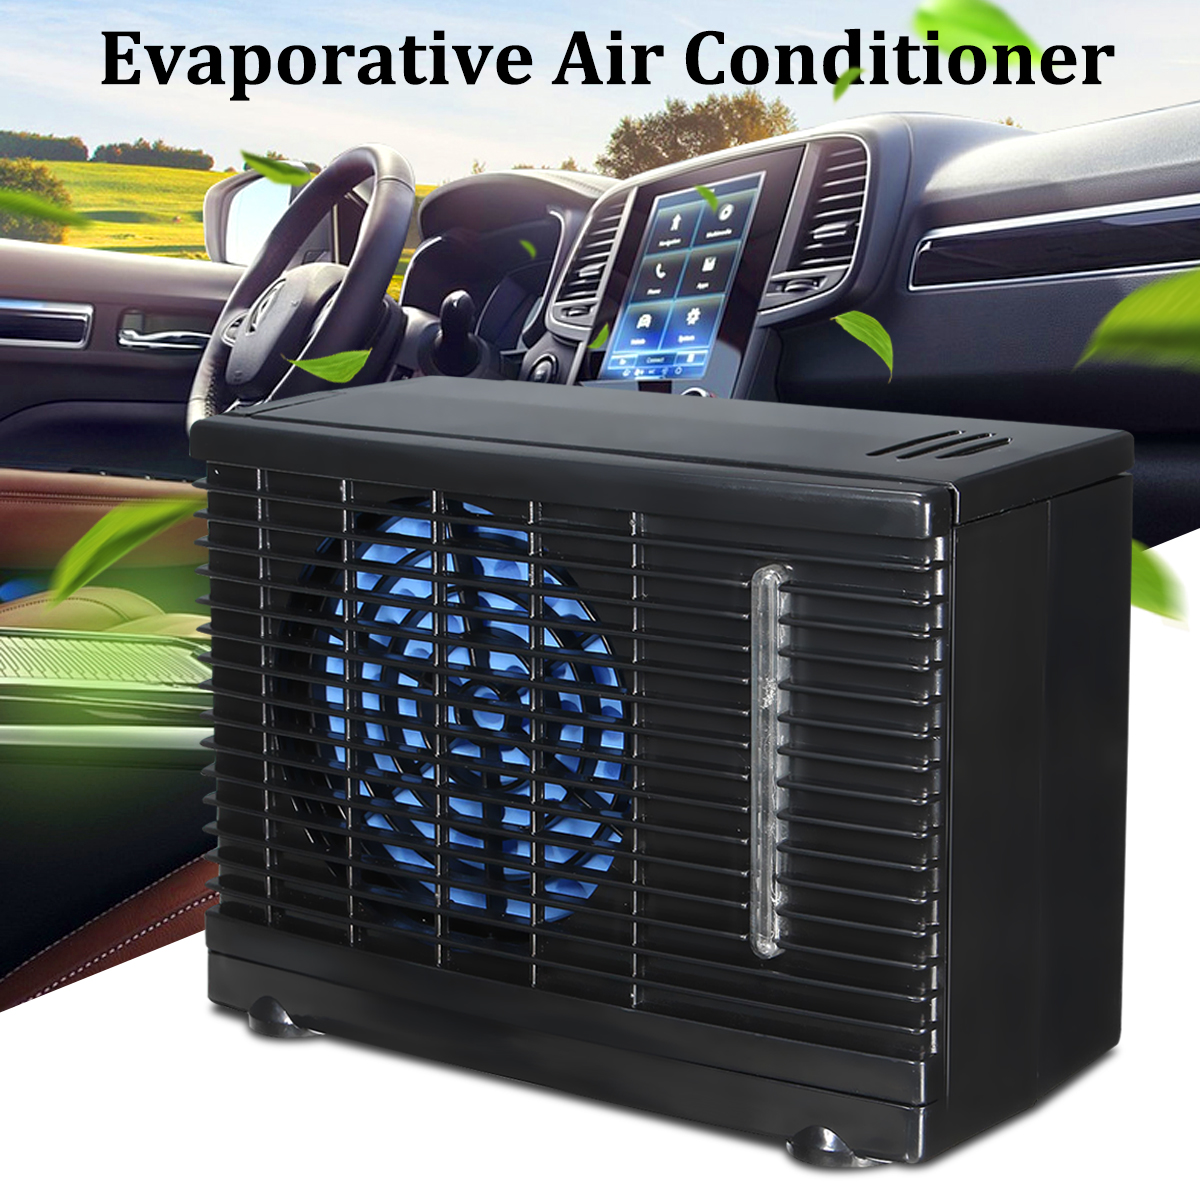 Portable Mini Car Air Conditioner Home Car Cooler Cooling Fan Water Ice Evaporative Car Air Conditioner 12/24V for samsung galaxy tab s 10 5 inch tablet t800 t805 2 in 1 removable wireless bluetooth abs keyboard leather stand case cover